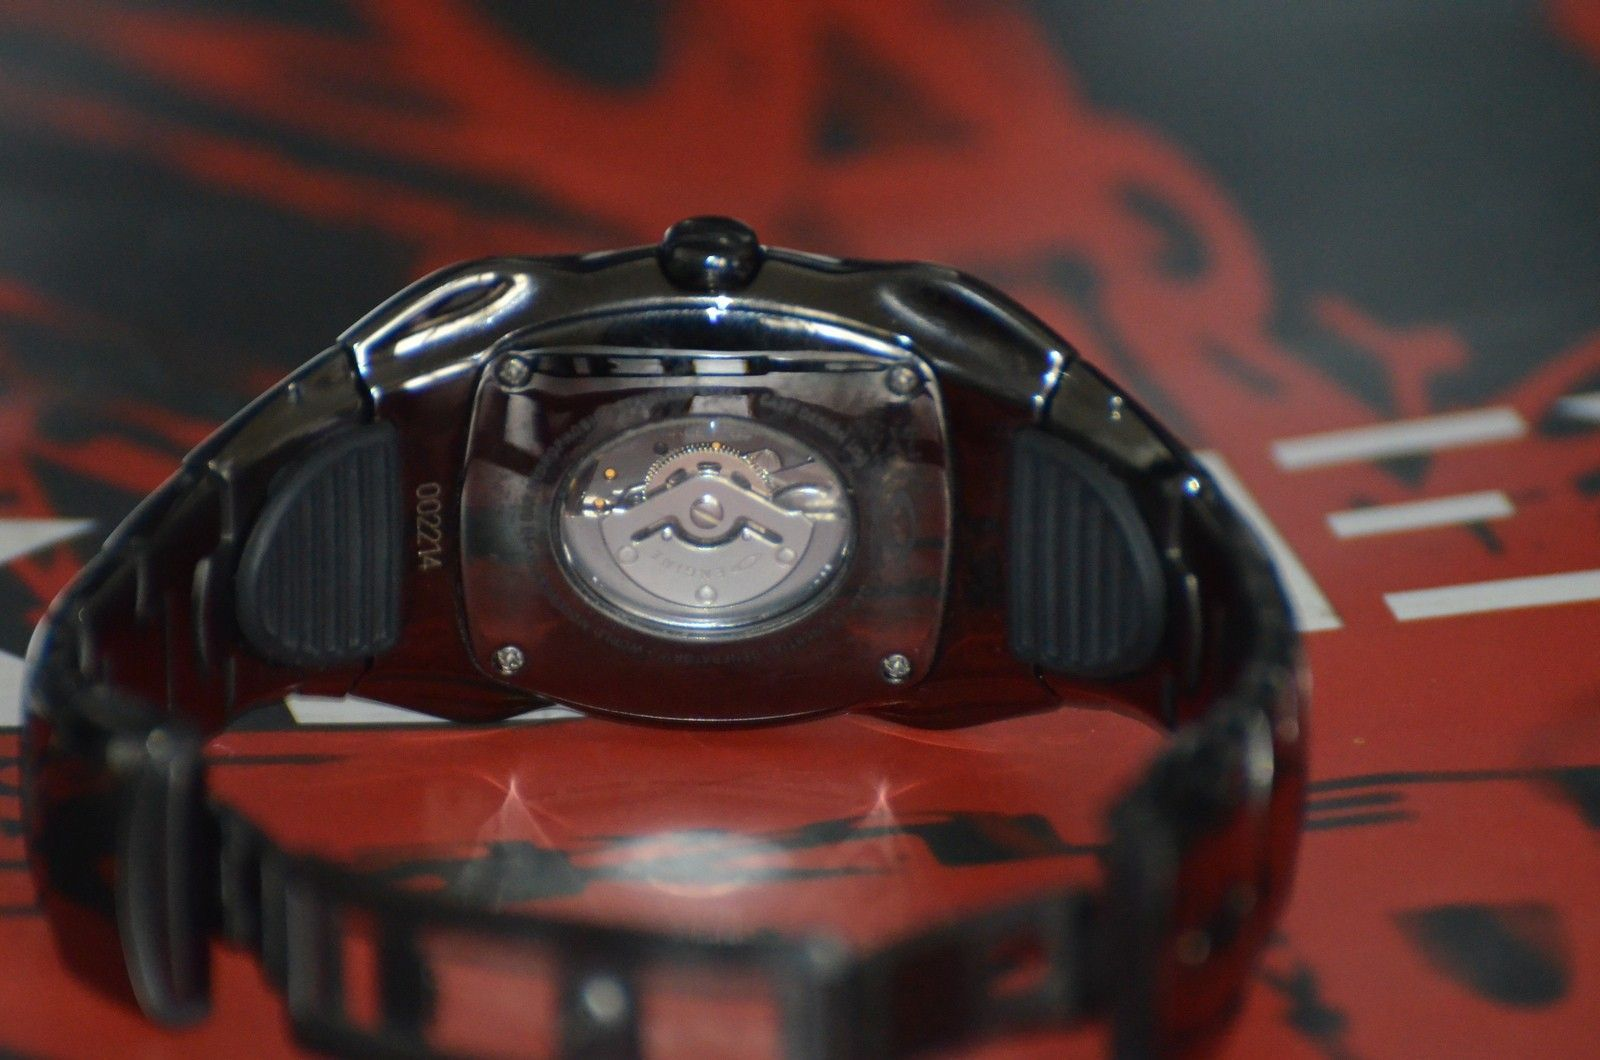 Or WTT TimeBomb Ion Plated Stainless Steel-Black Watch - 8222776835_b0e9564e82_h.jpg